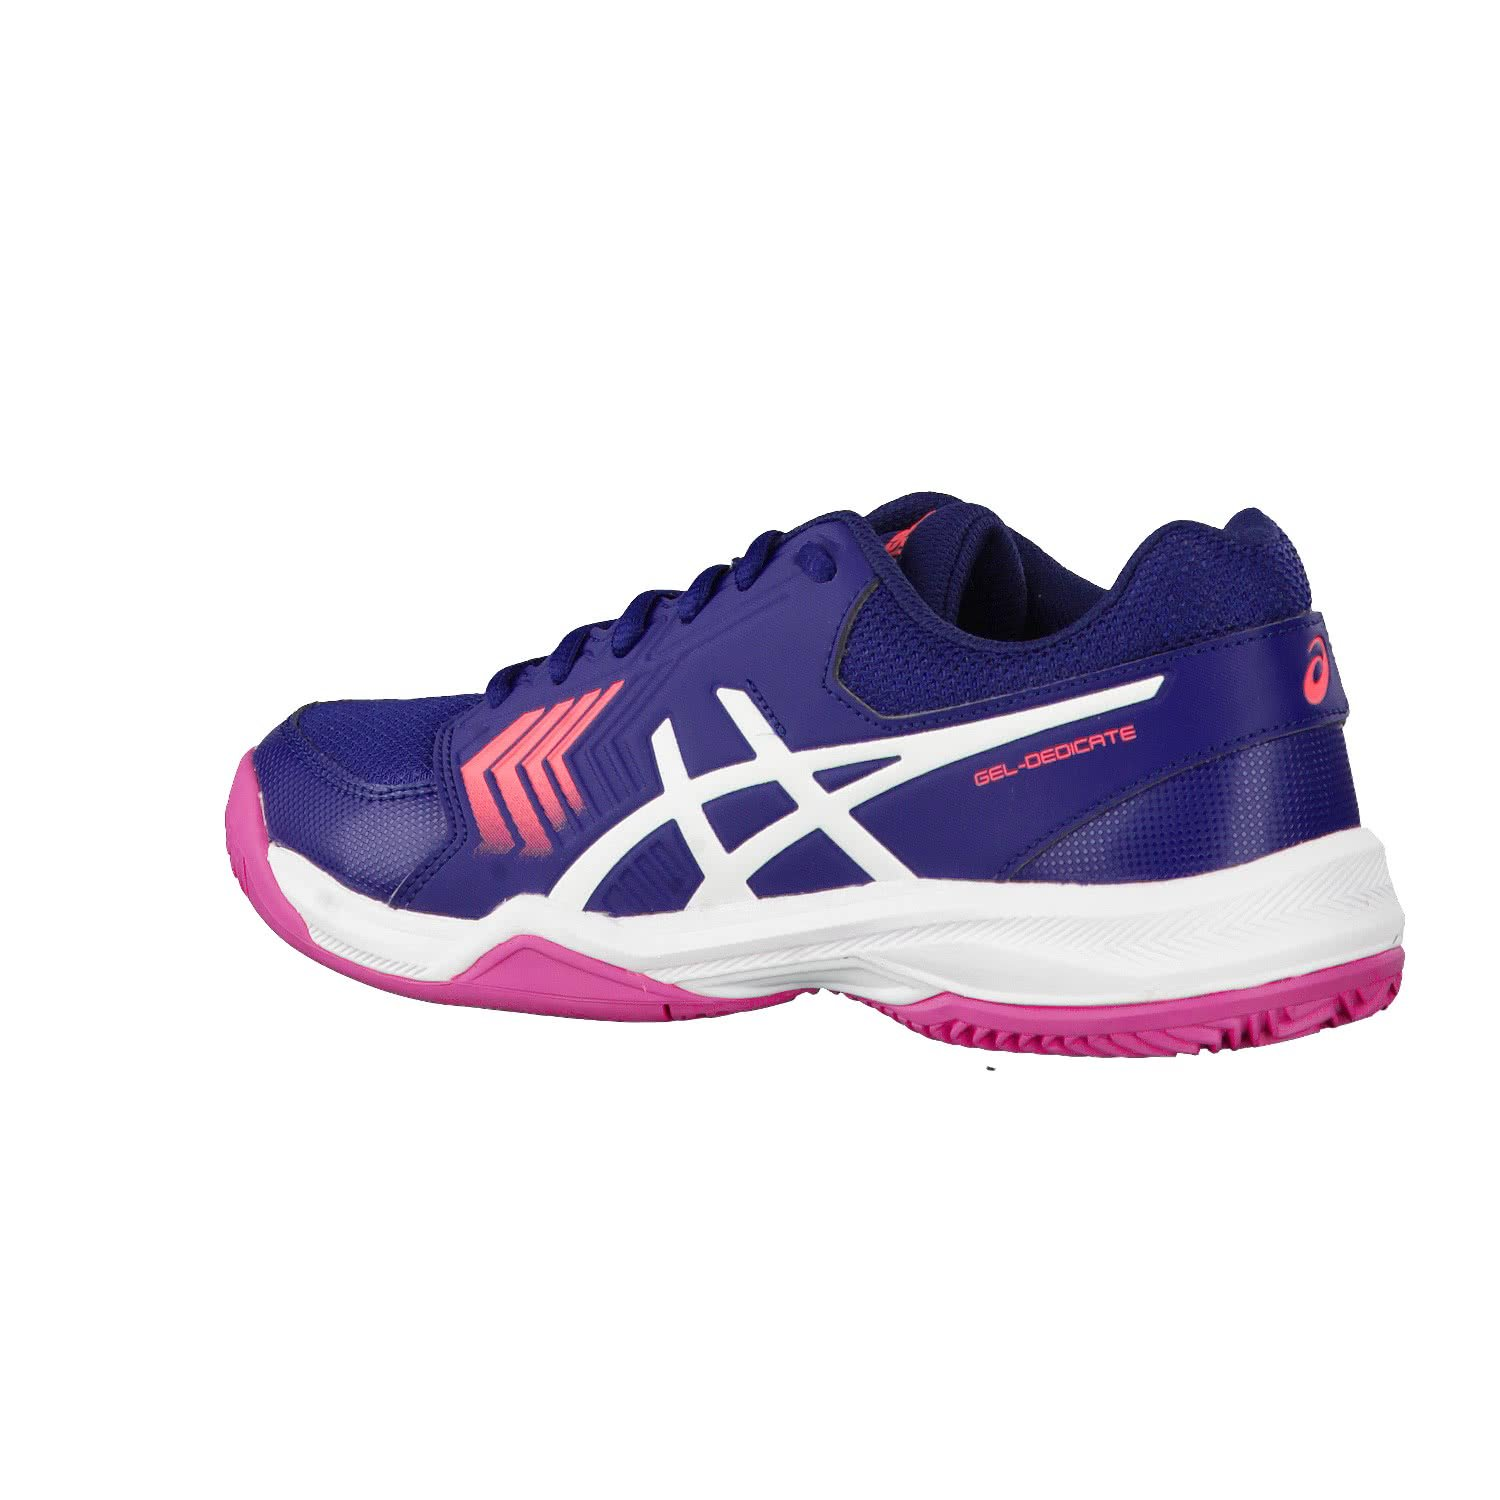 Chaussures Femme Asics Gel-dedicate 5 Clay